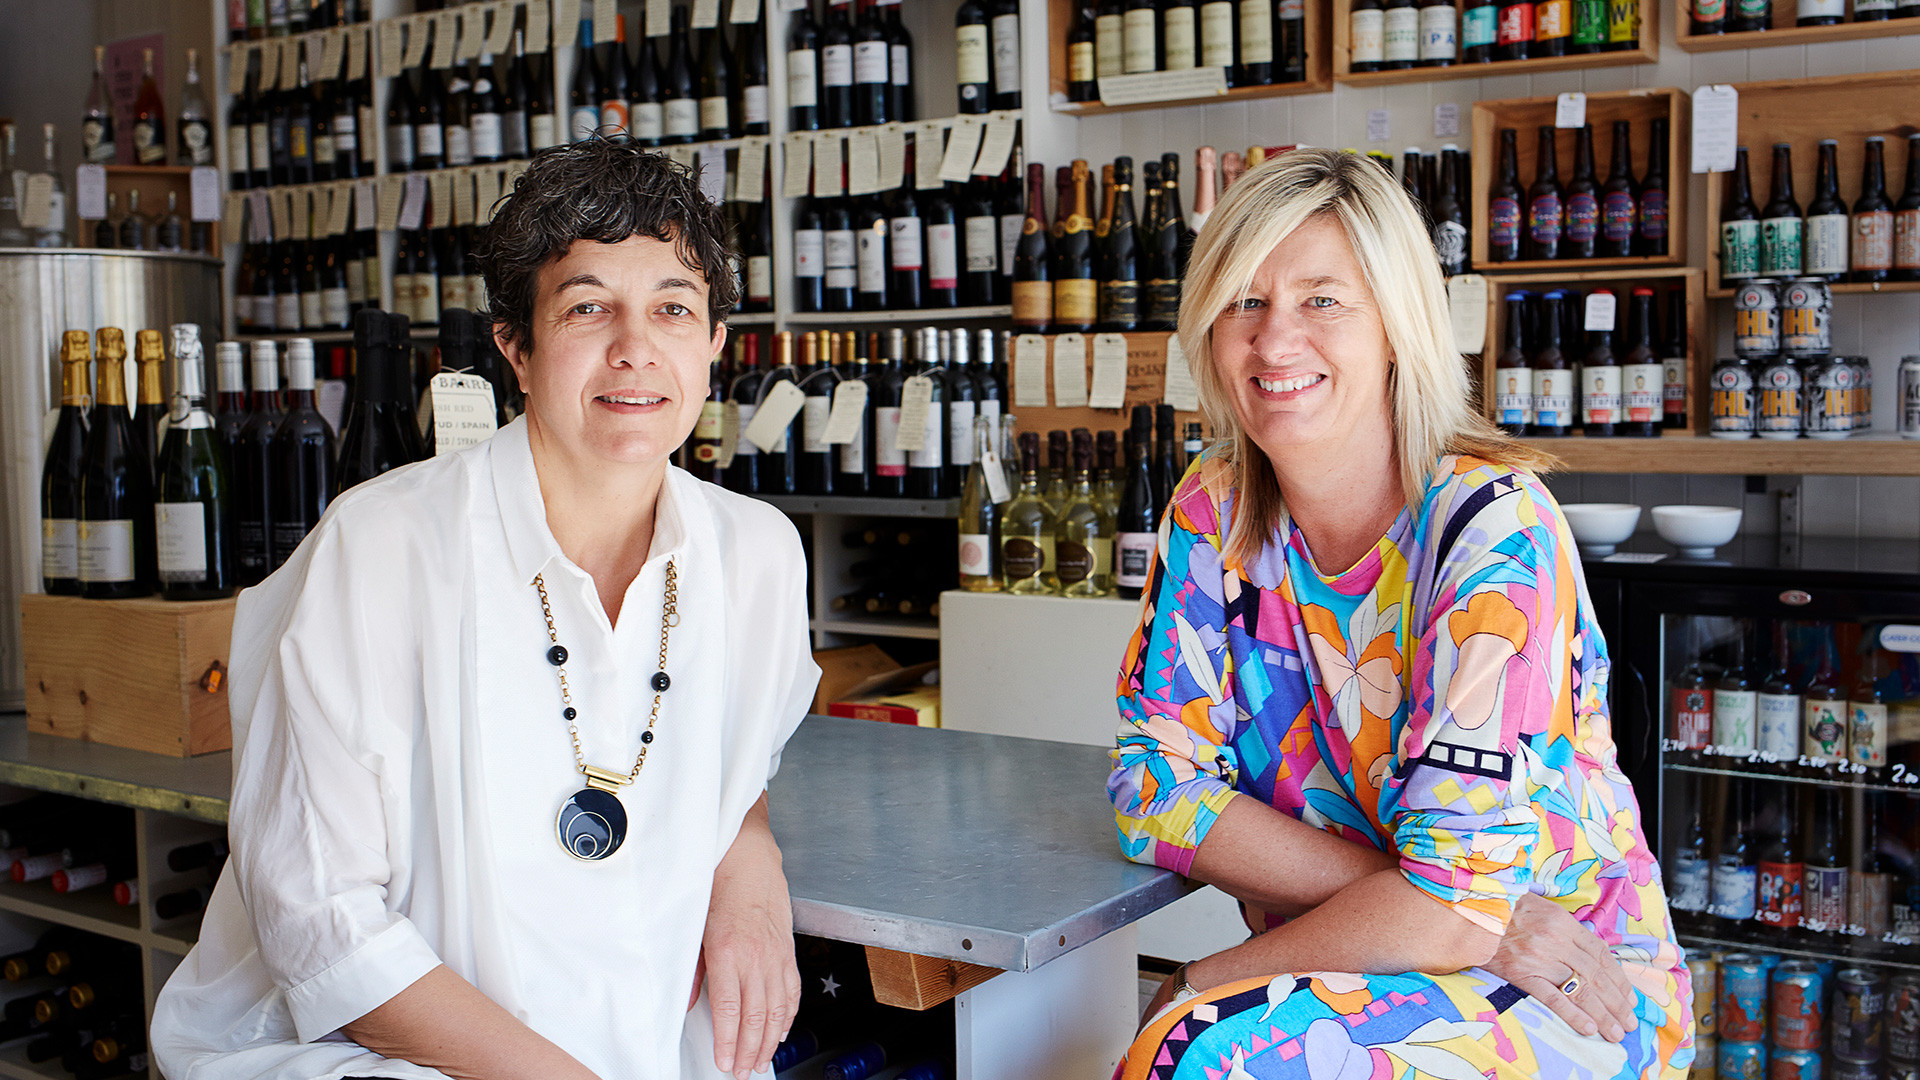 Muriel Chatel and Corinna Pyke, Directors of Borough Wines & Beers